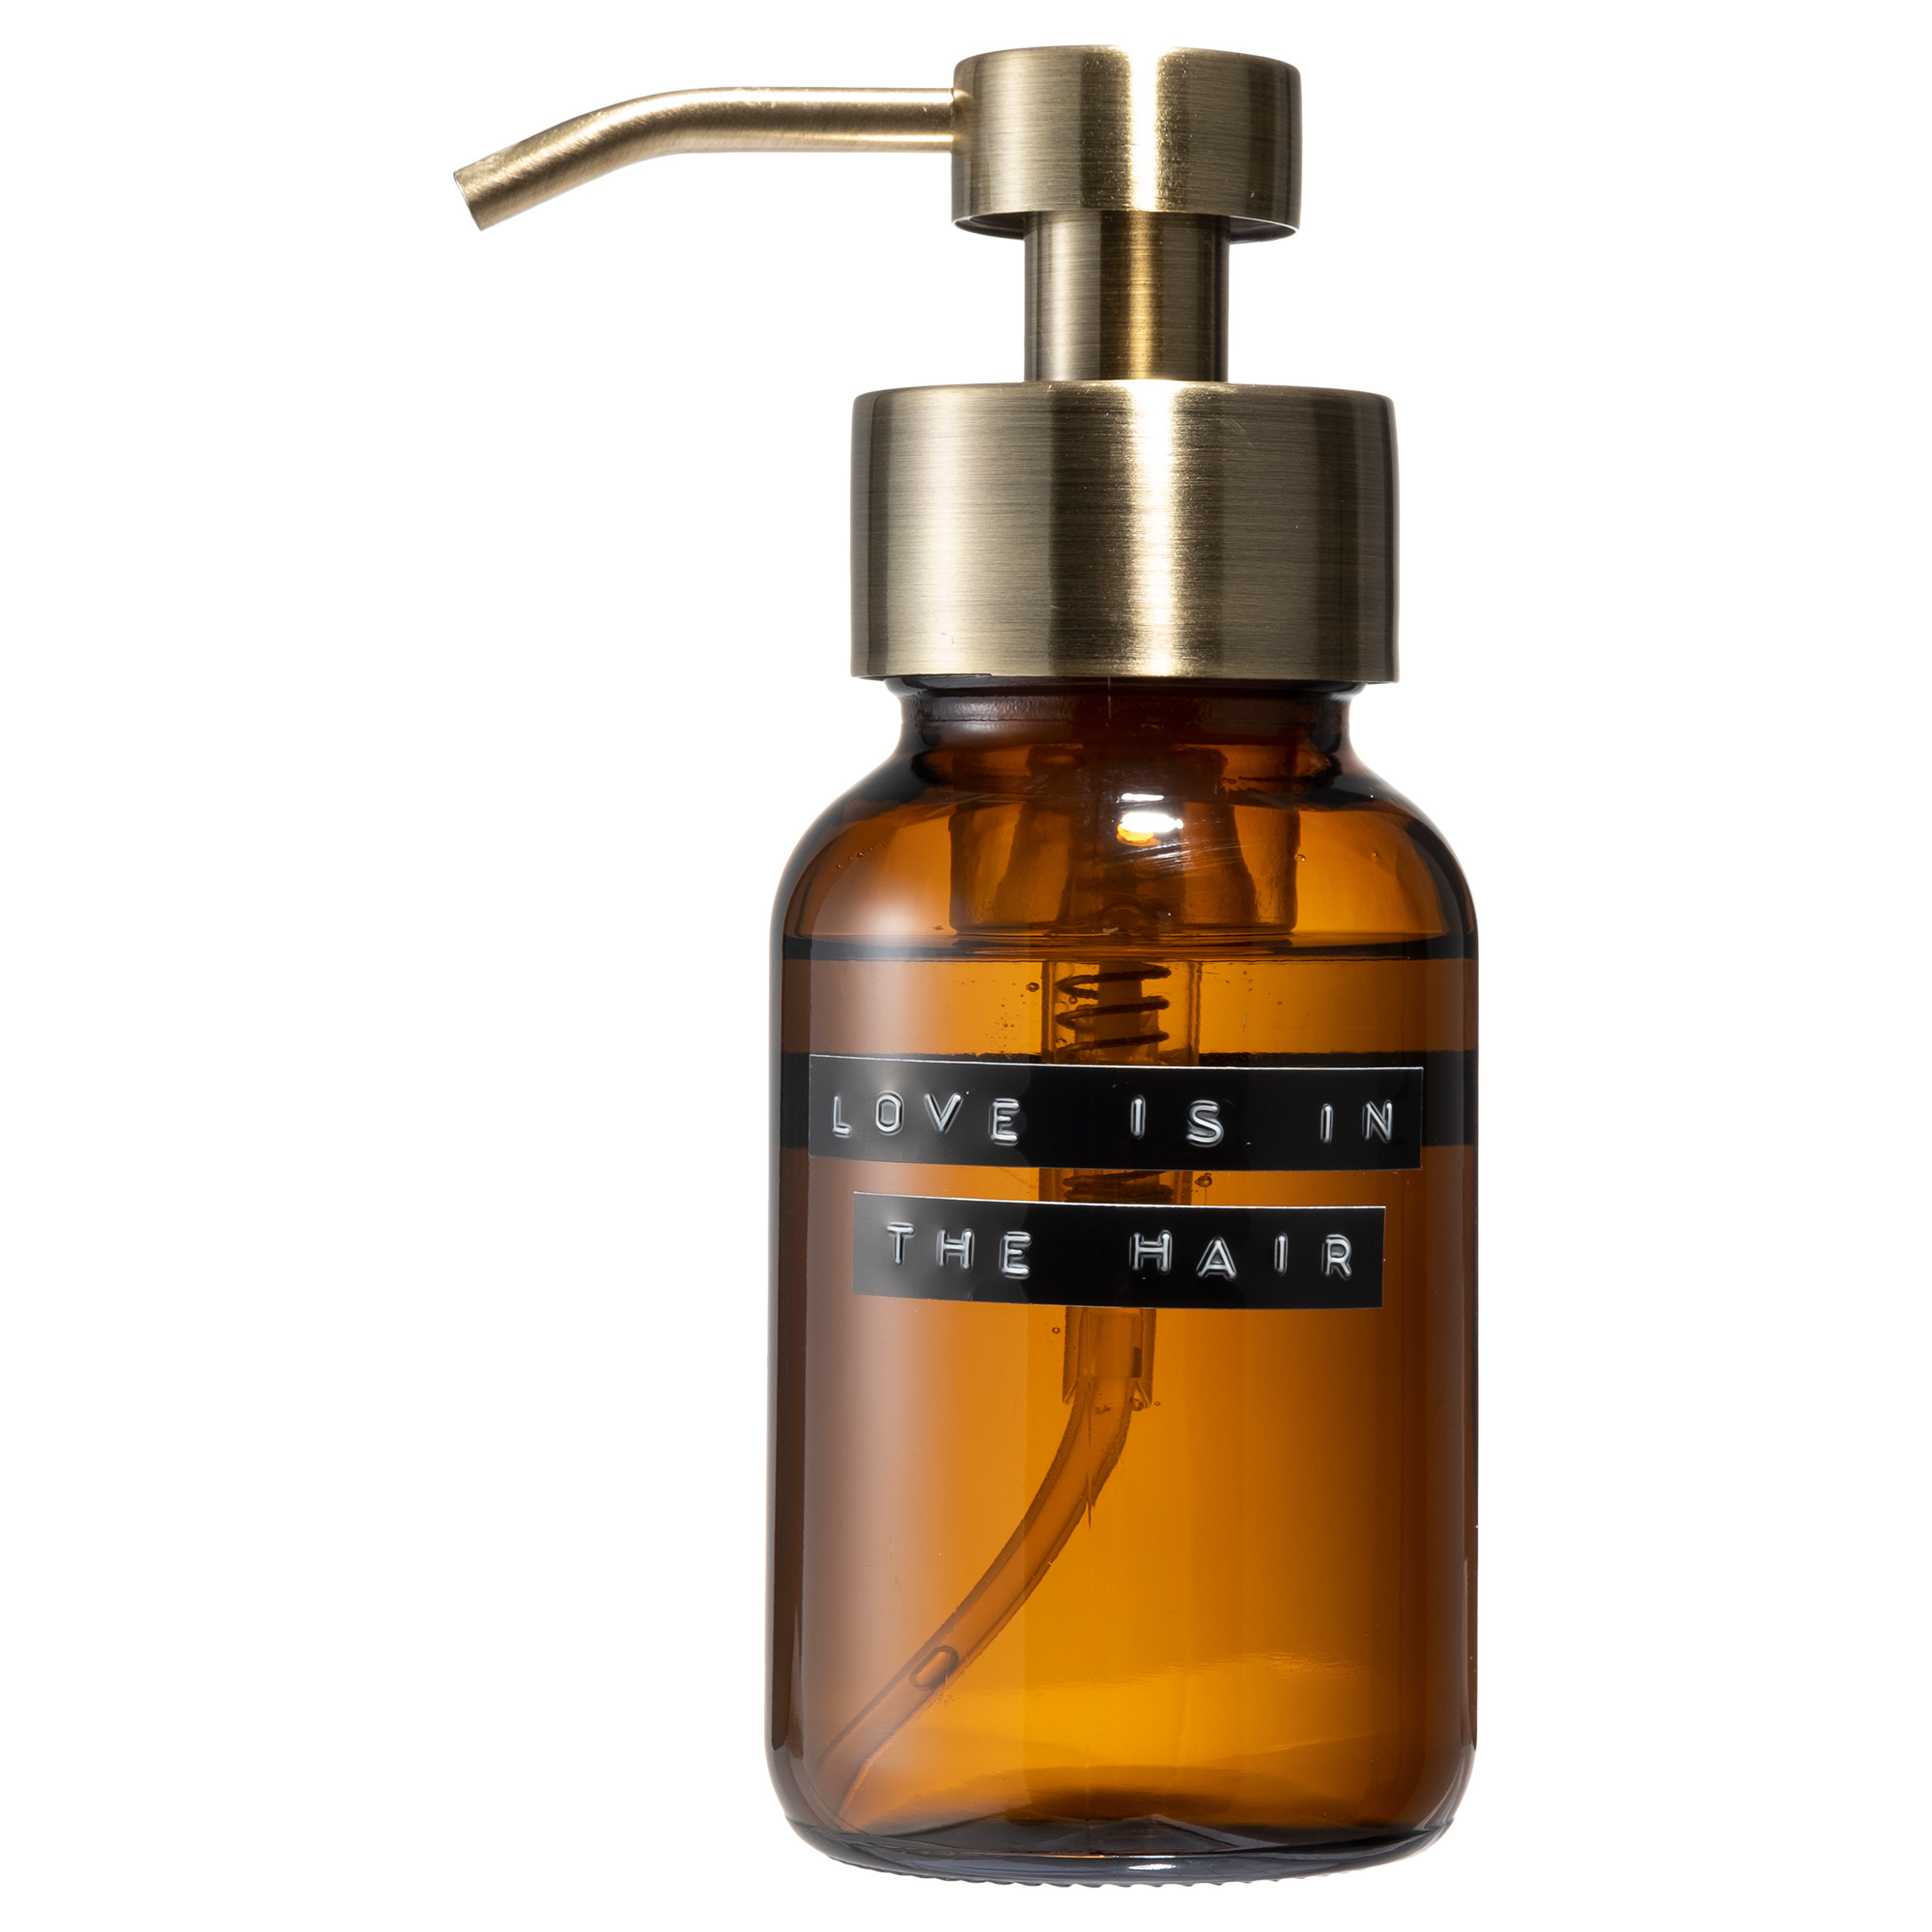 Shampoo amber brass 250ml 'love is in the hair'-1